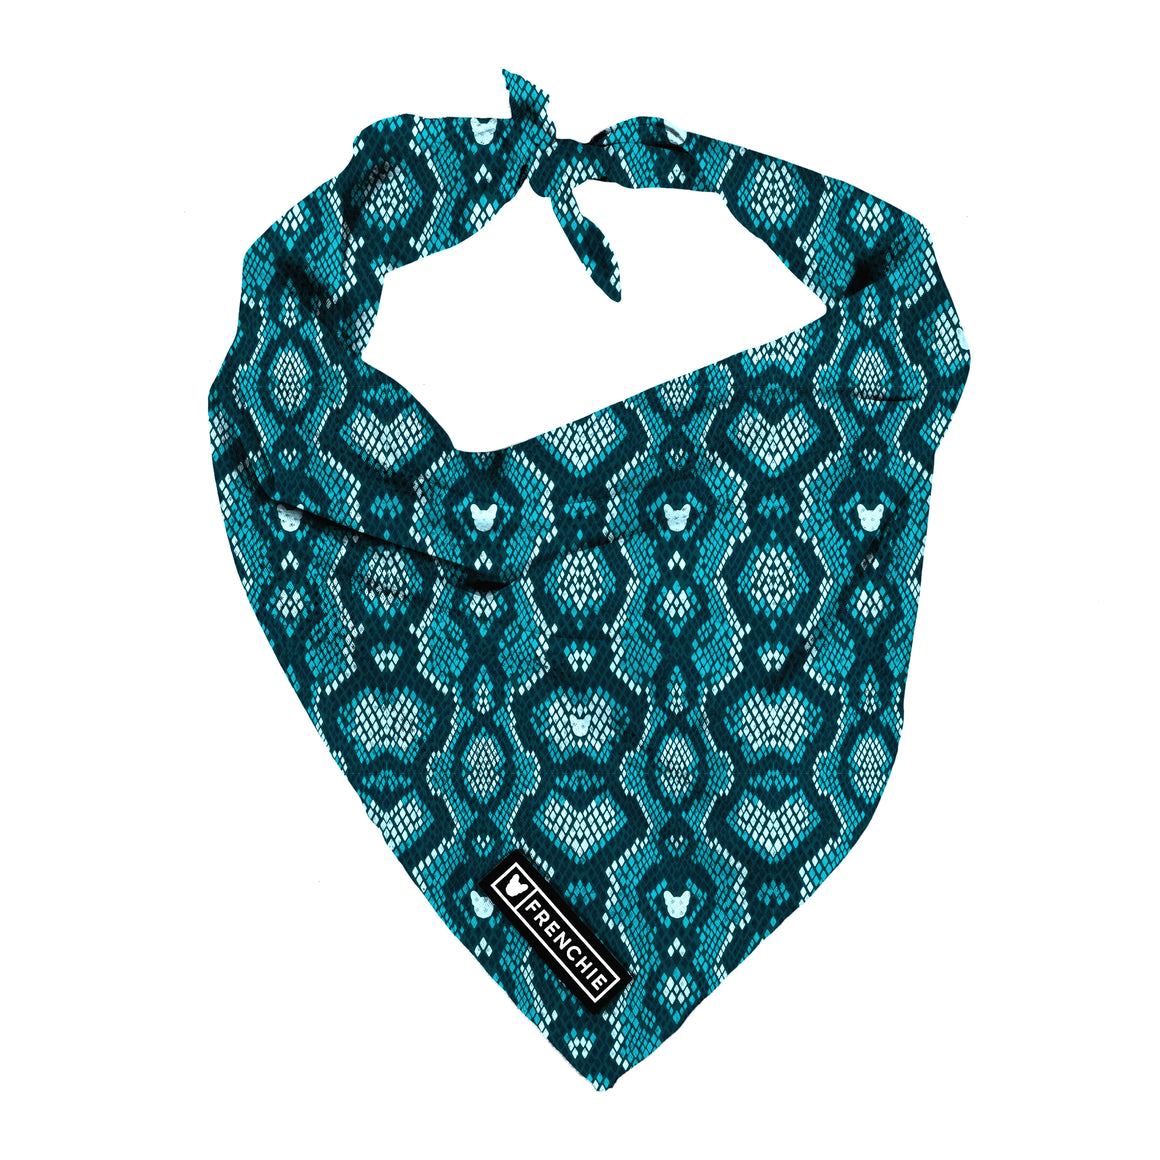 Frenchie Cooling Bandana - Snake Skin